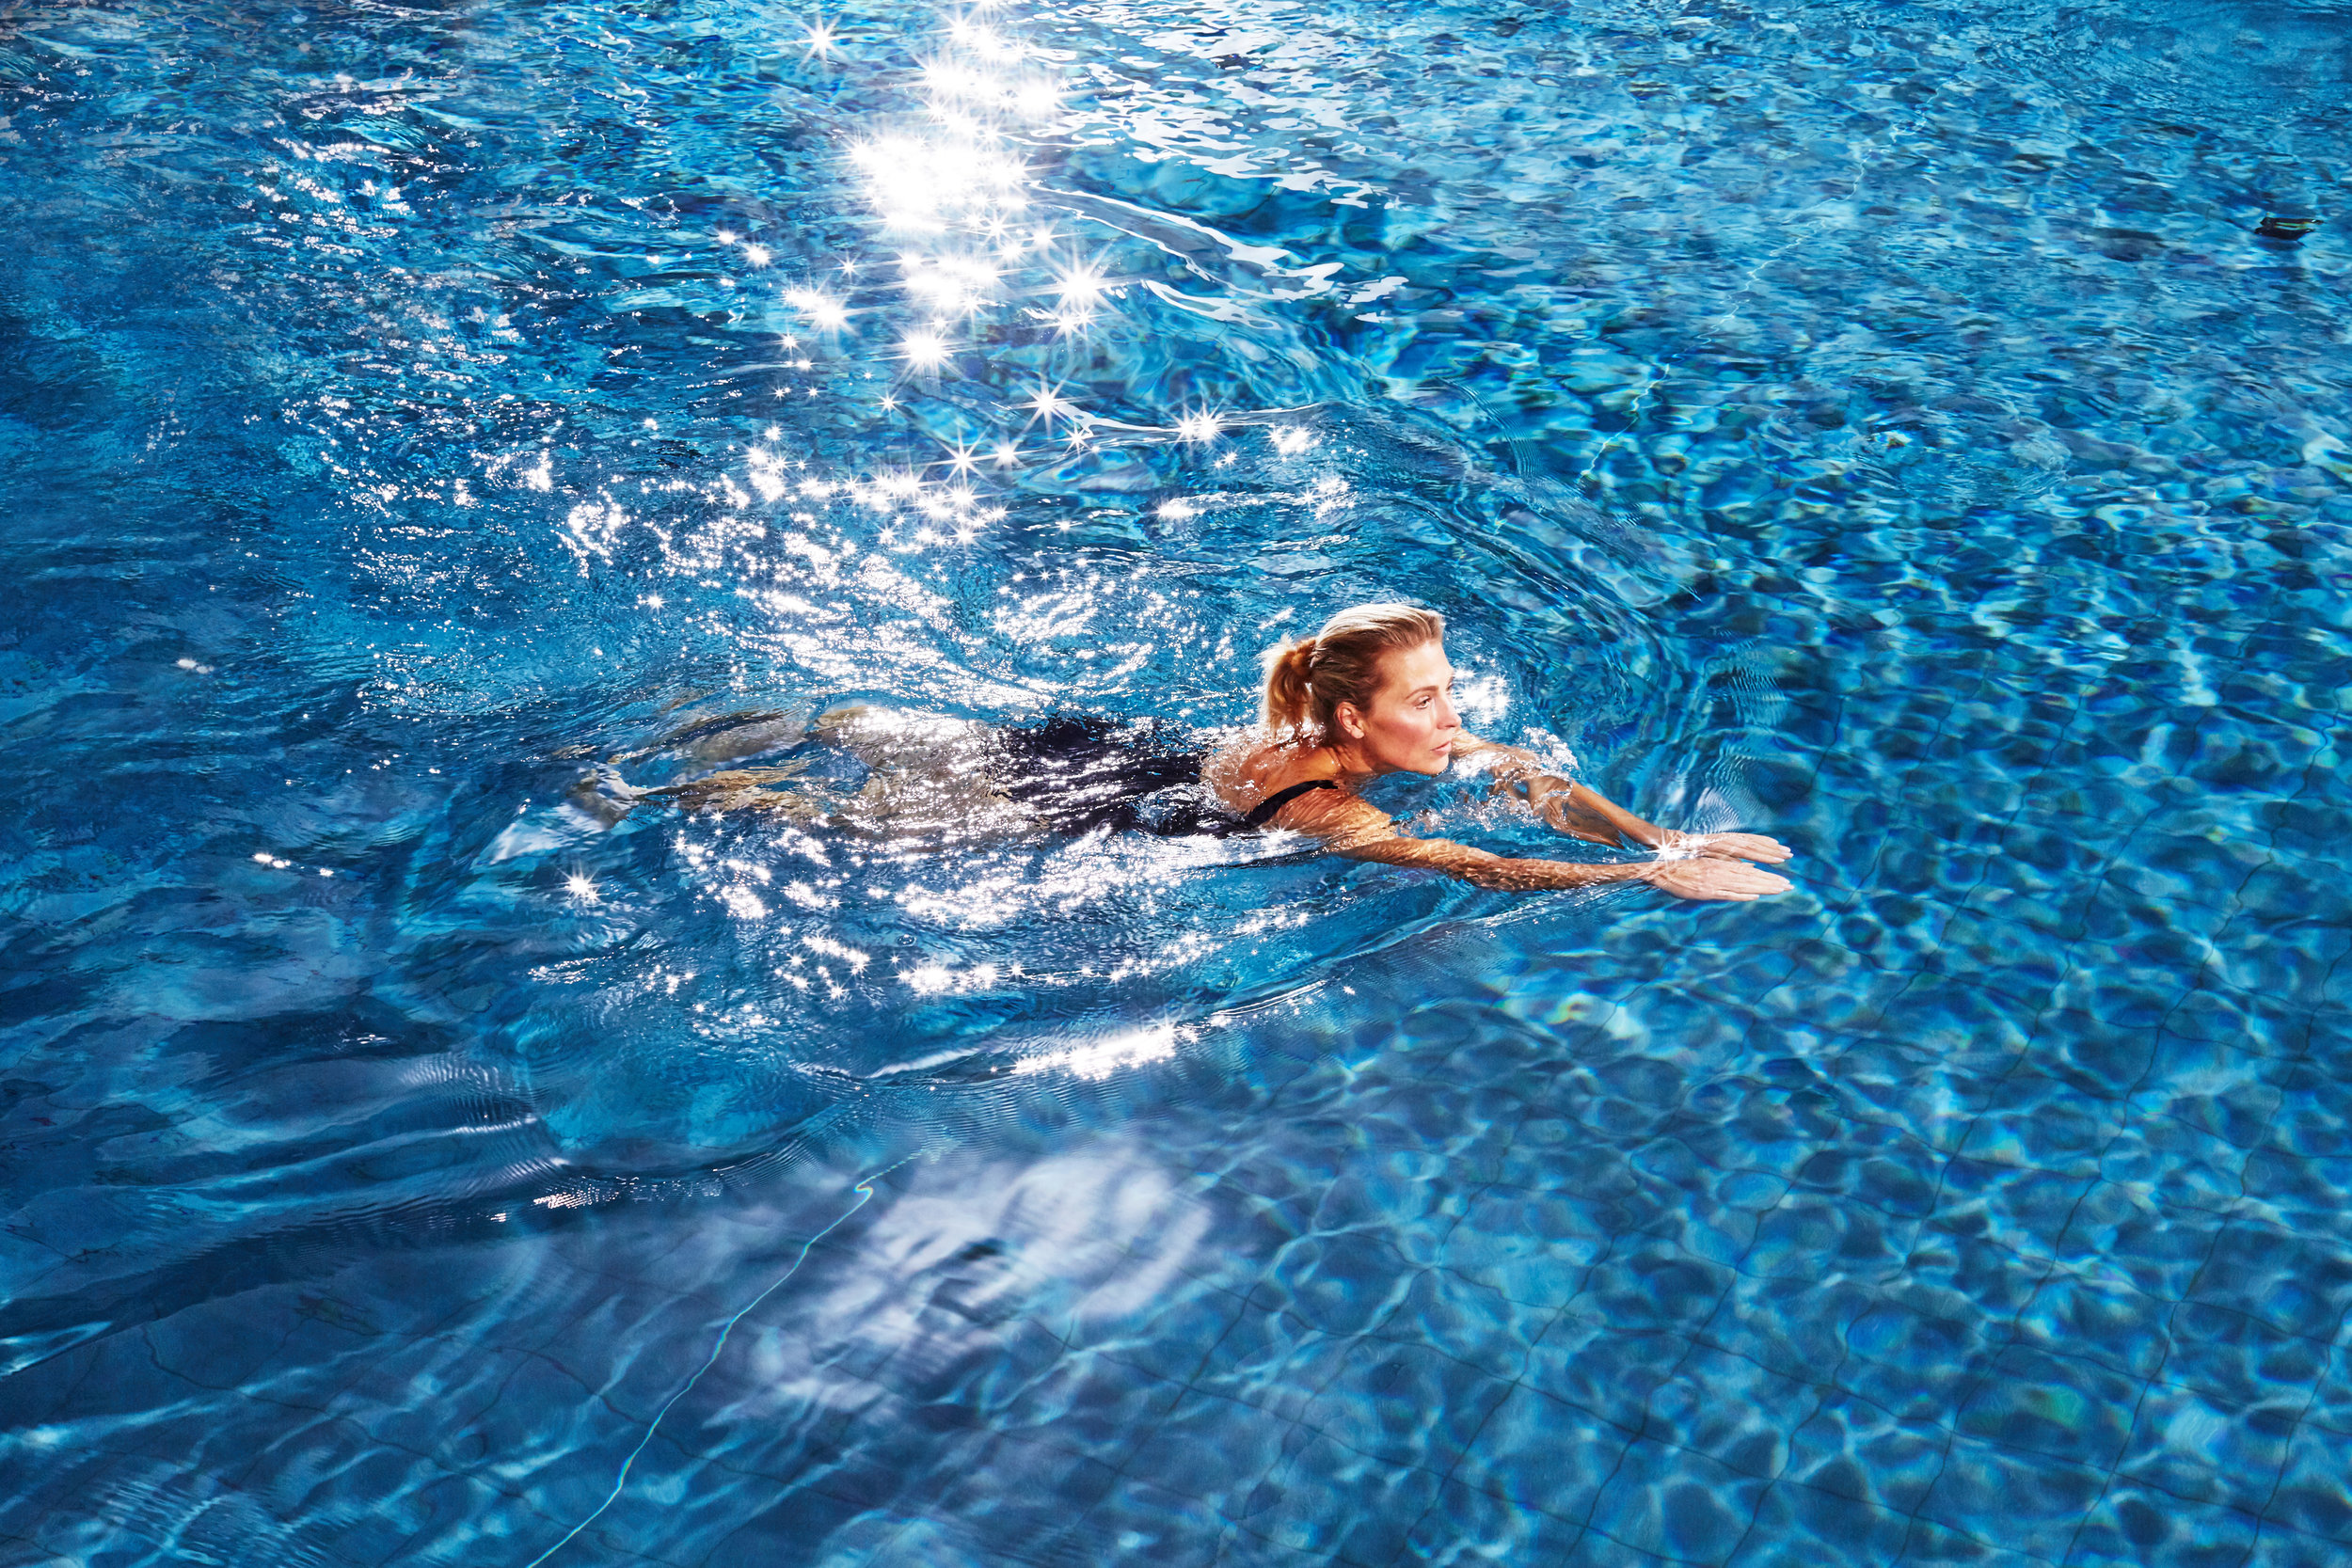 Sports & Fitness Wellbeing Photographer Aspria Swimming